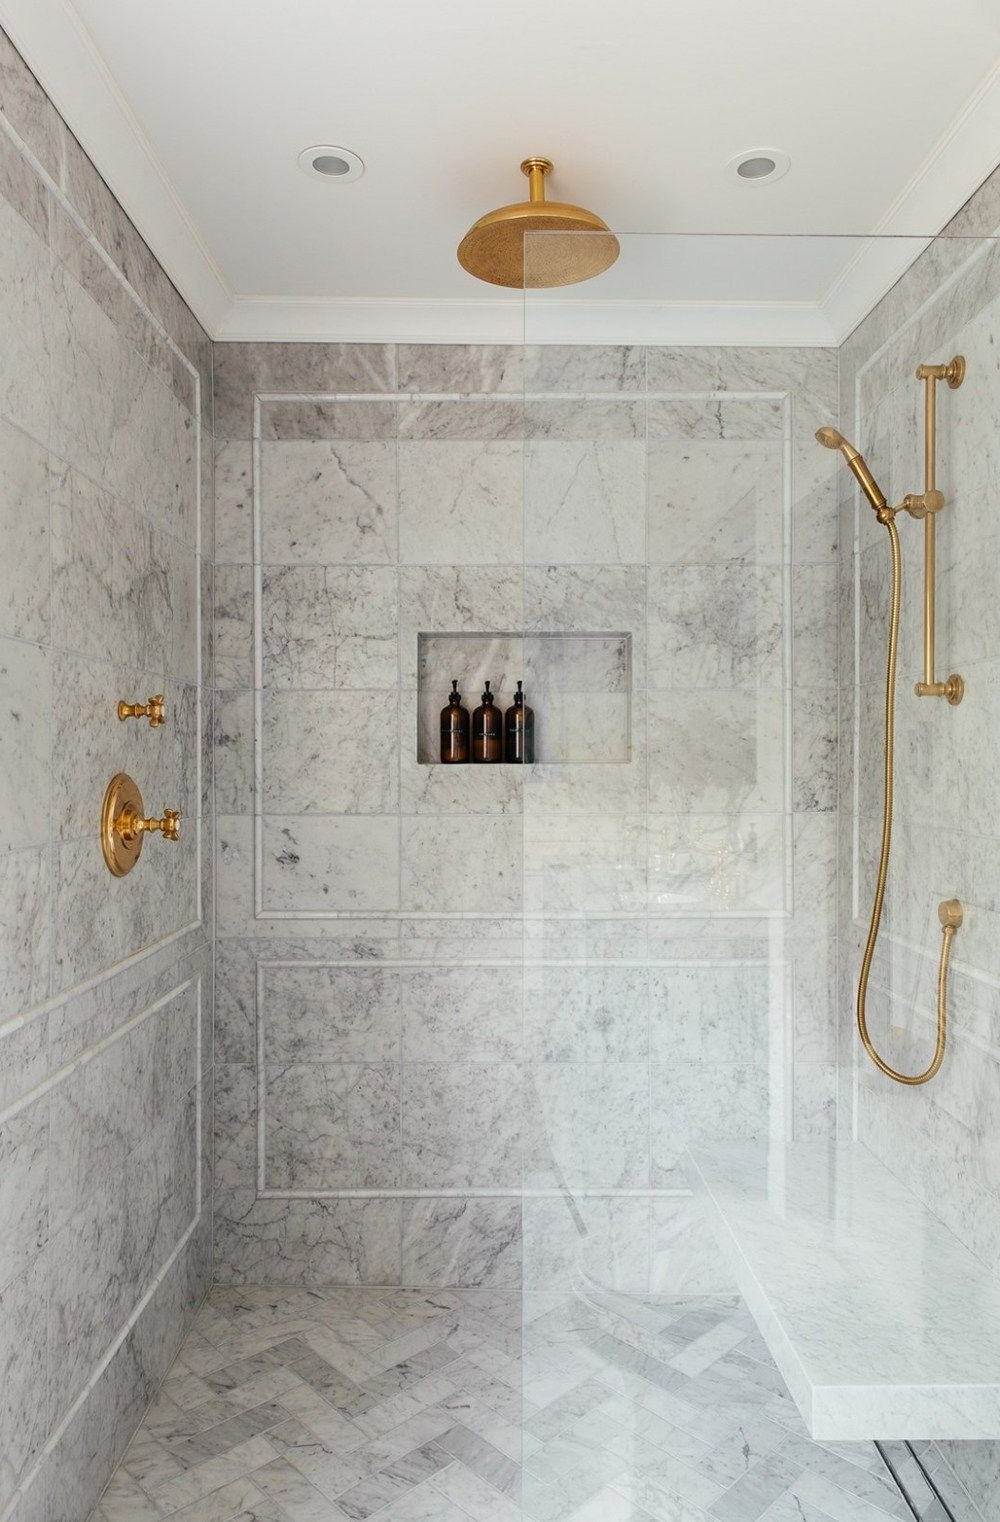 How To Plan And Design A Shower Niche Room For Tuesday Bathroom Niche Design